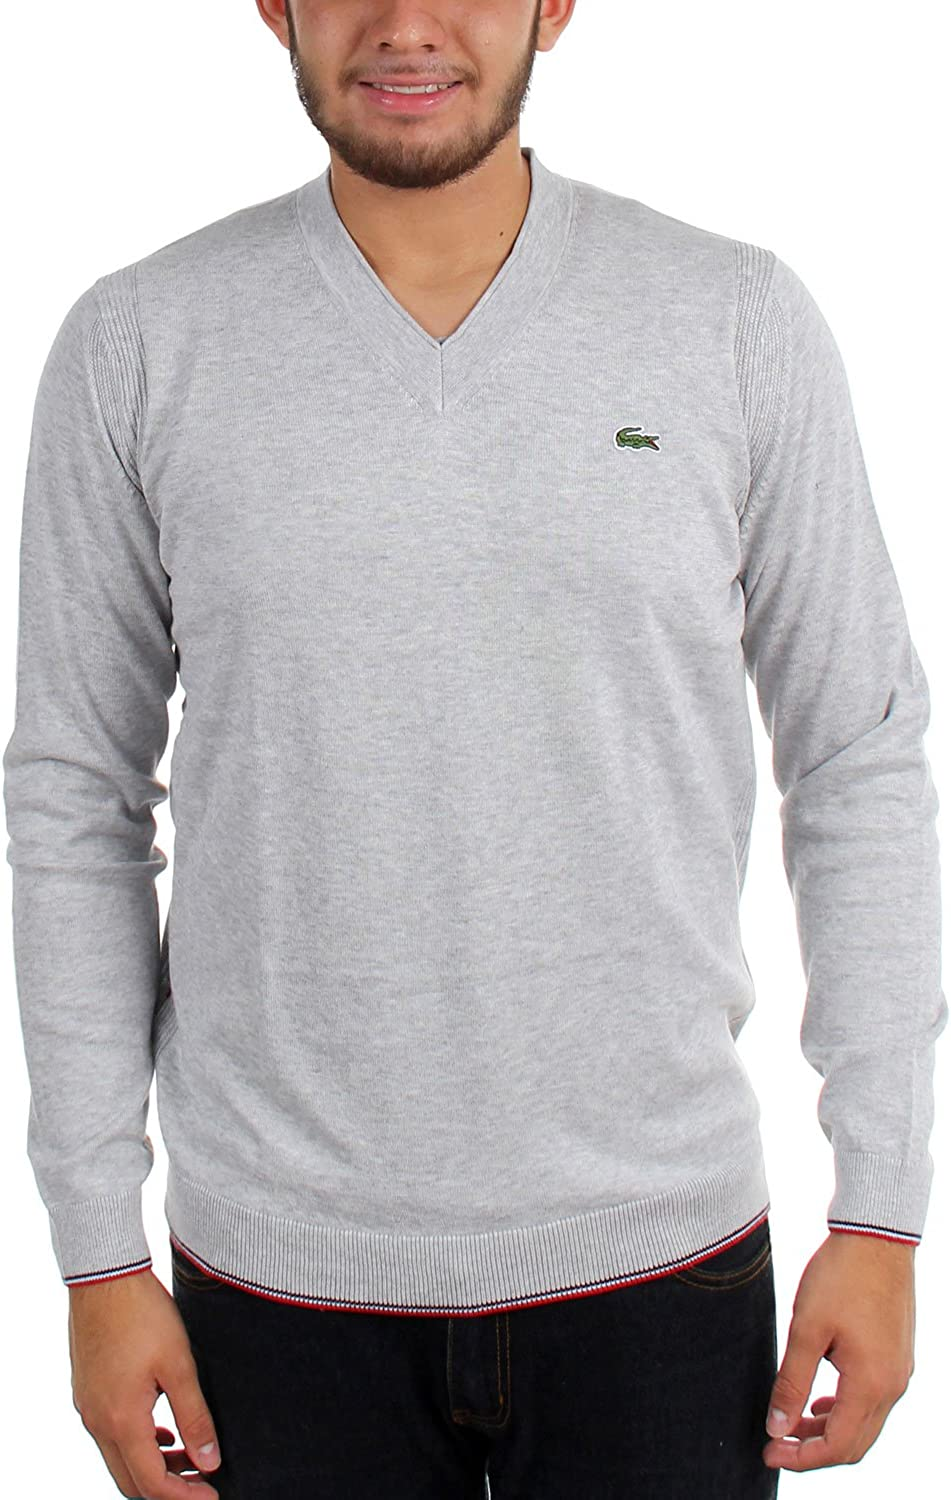 Lacoste Mens Mens Cotton Jersey V-Neck Sweater Pullover Sweater